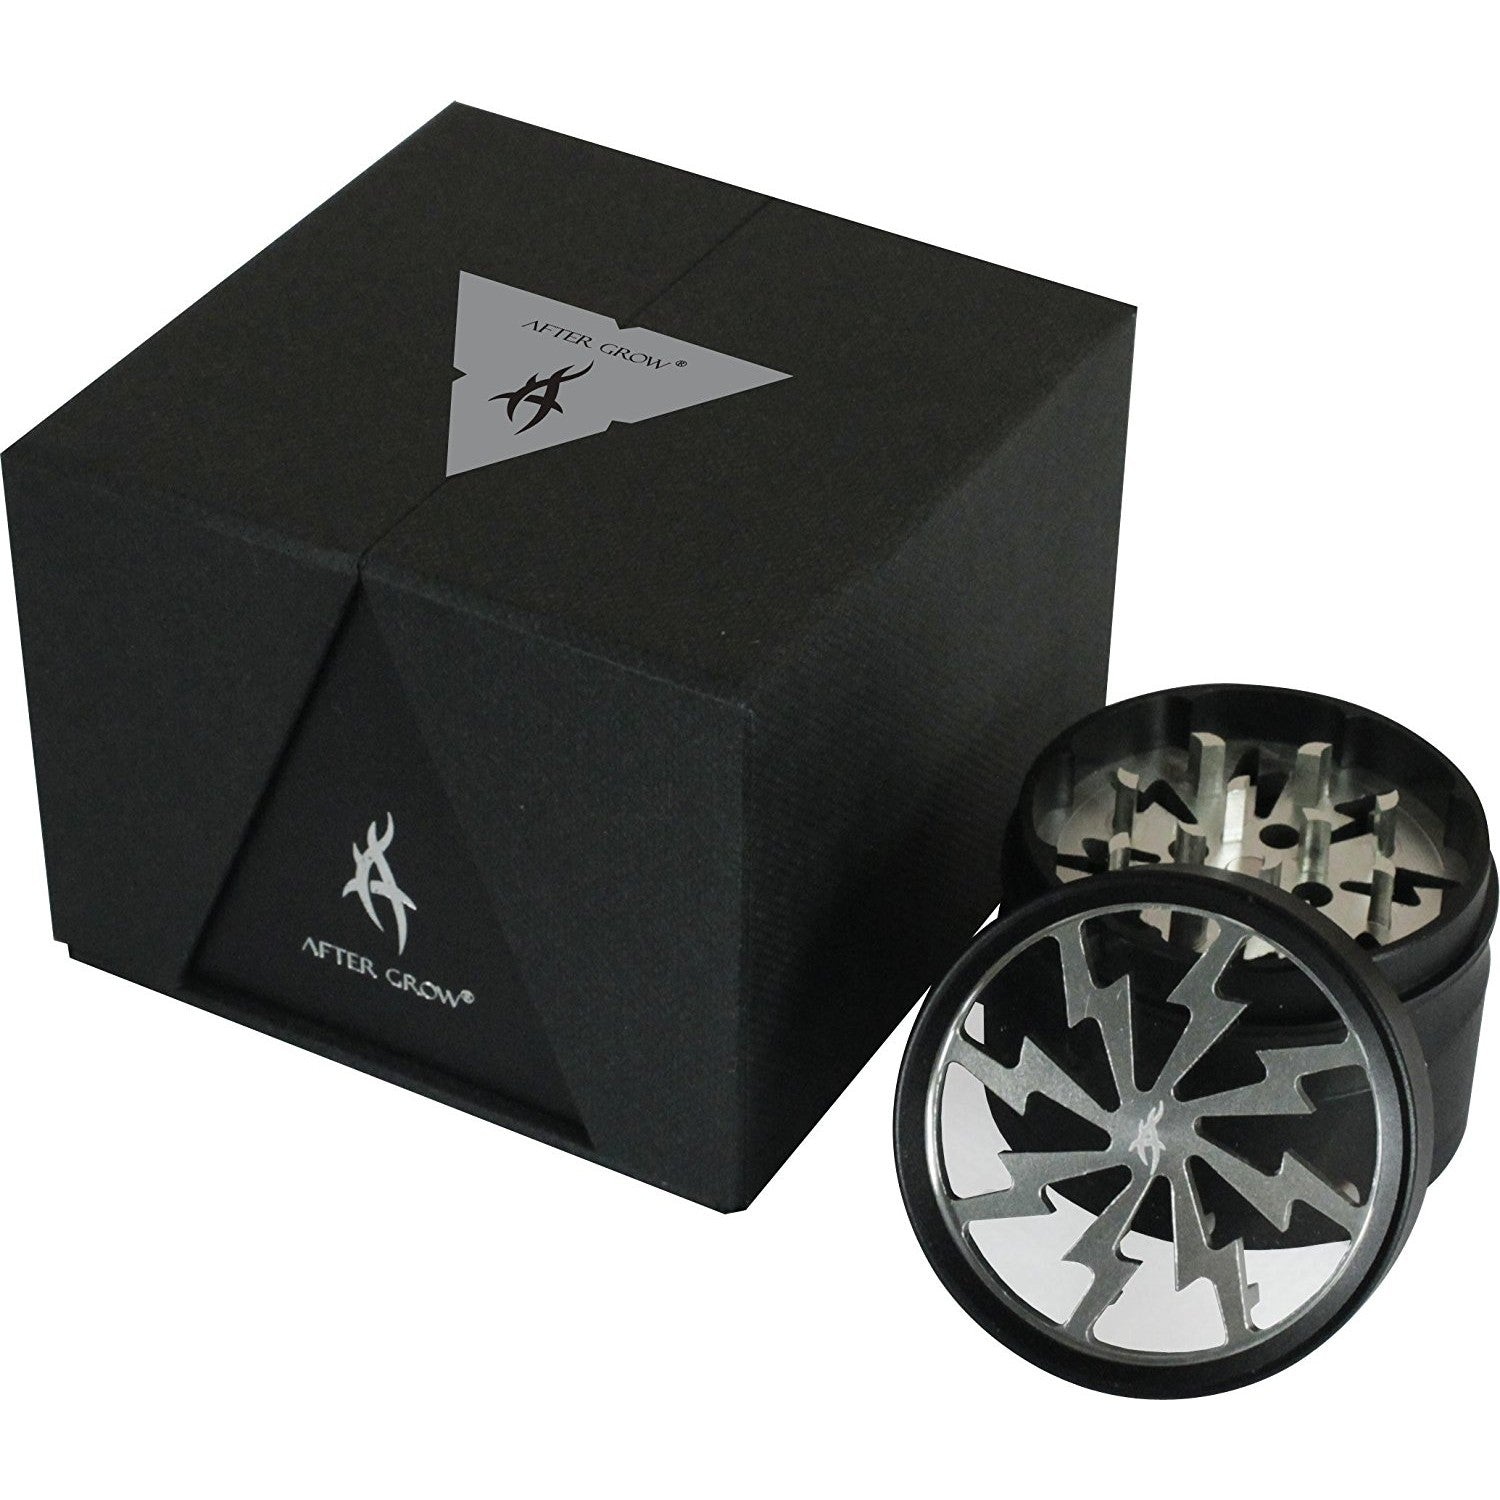 Thorinder 50mm Mini Sift Herb Grinder - Vapefiend UK